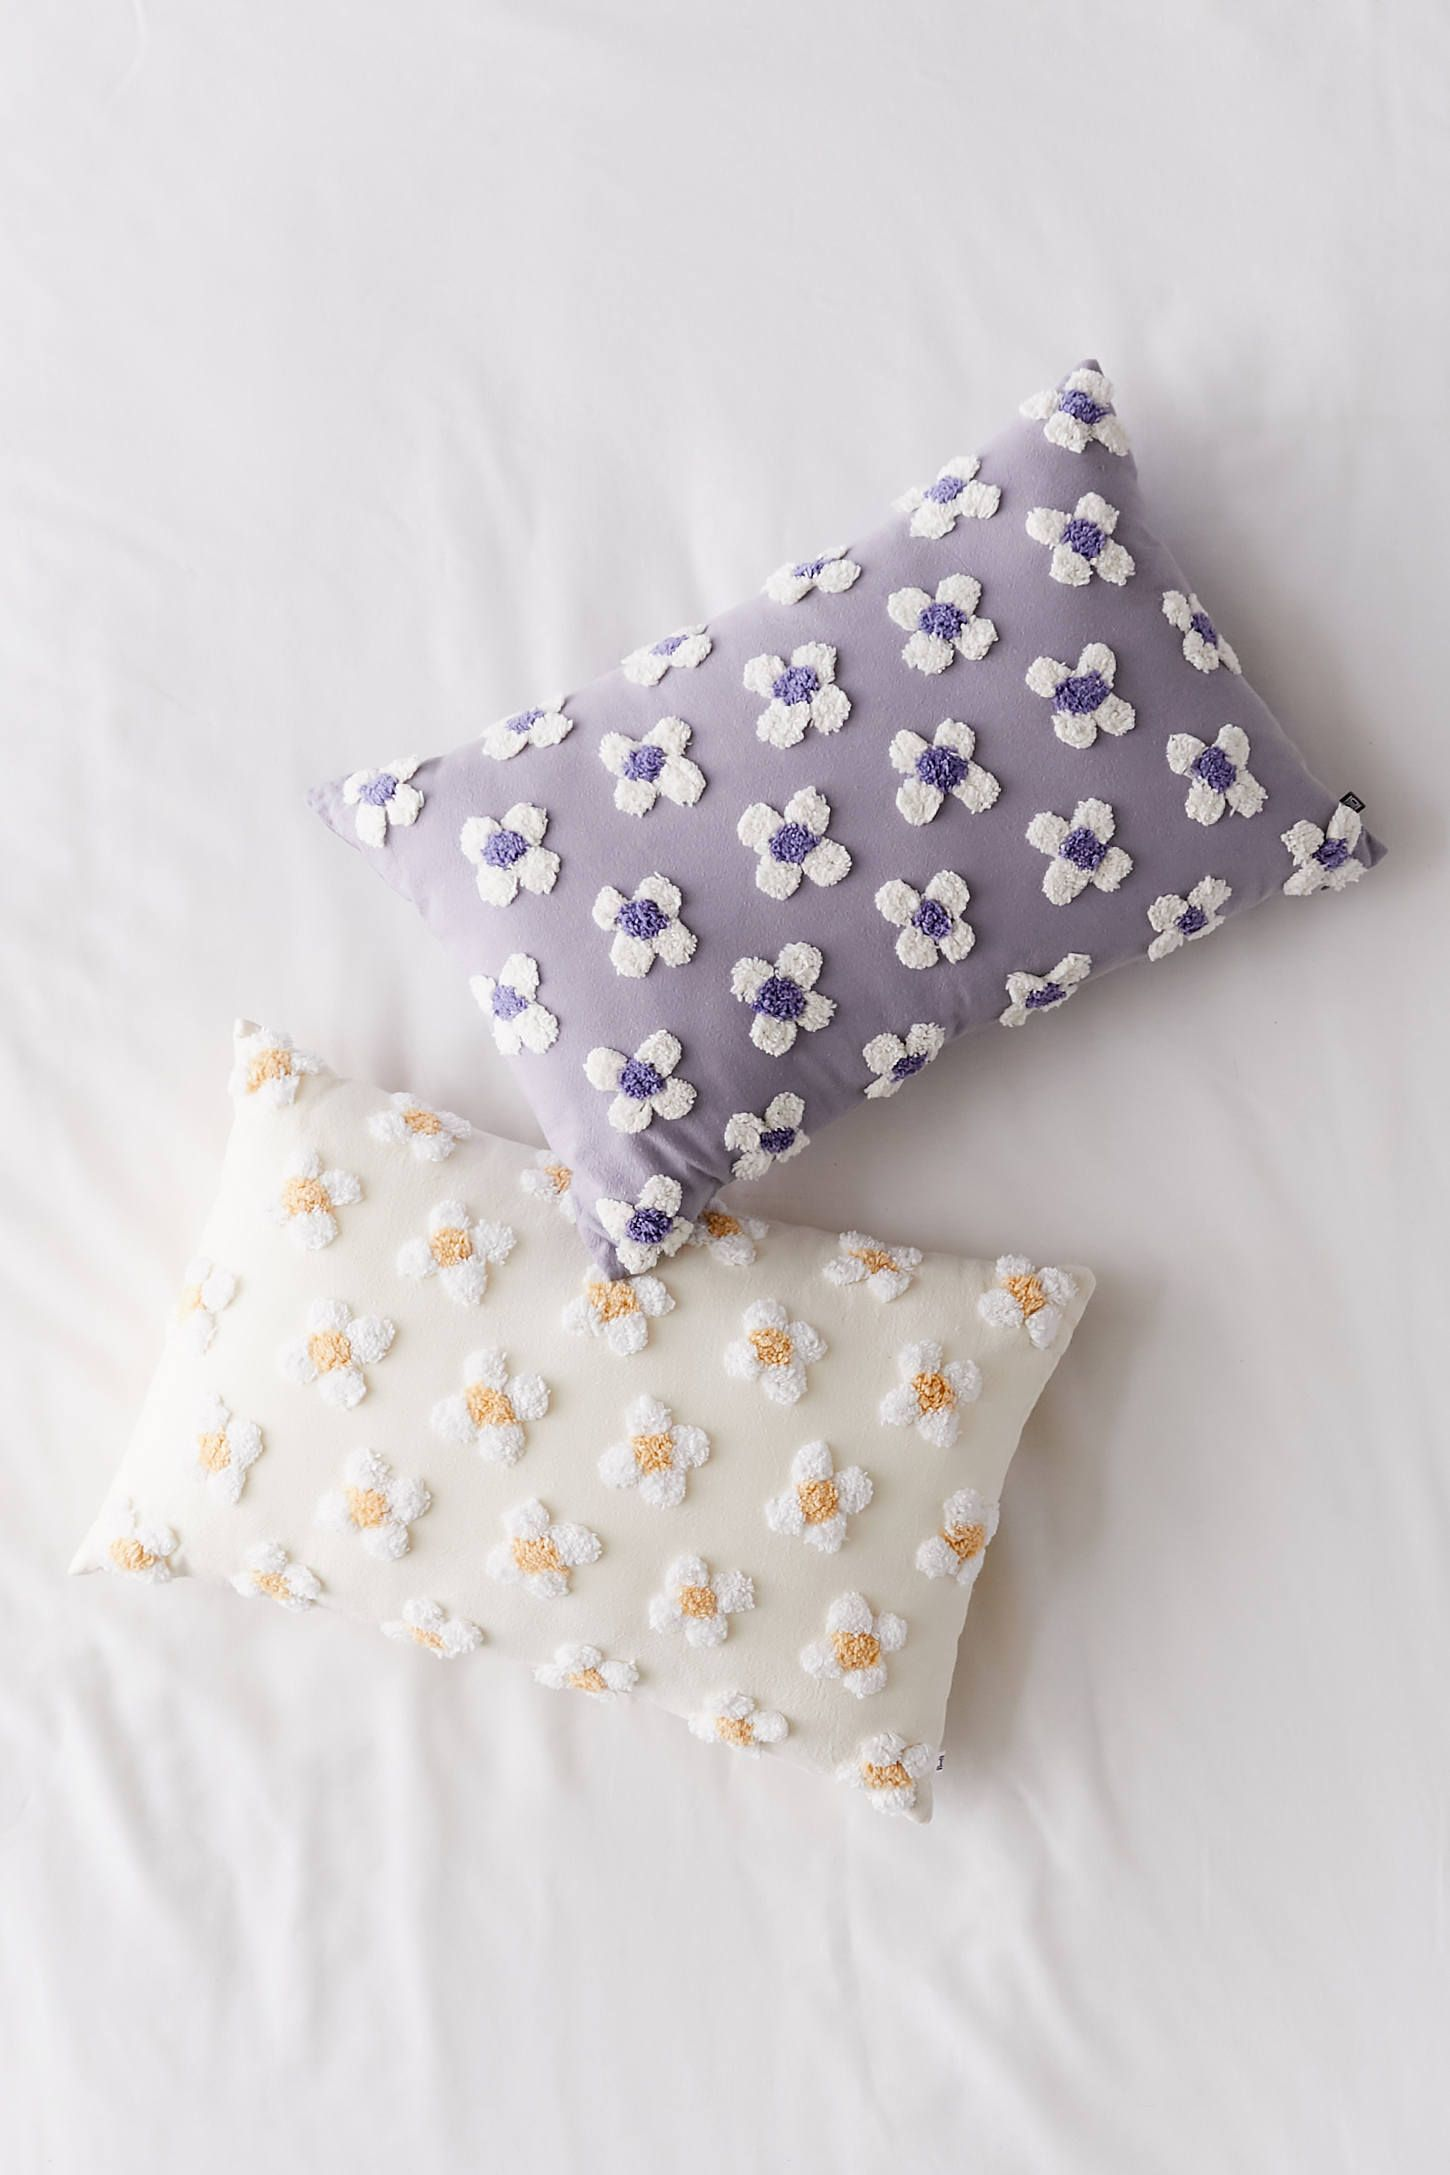 15 Cute Throw Pillows Stylish Decorative Pillows For Your Couch